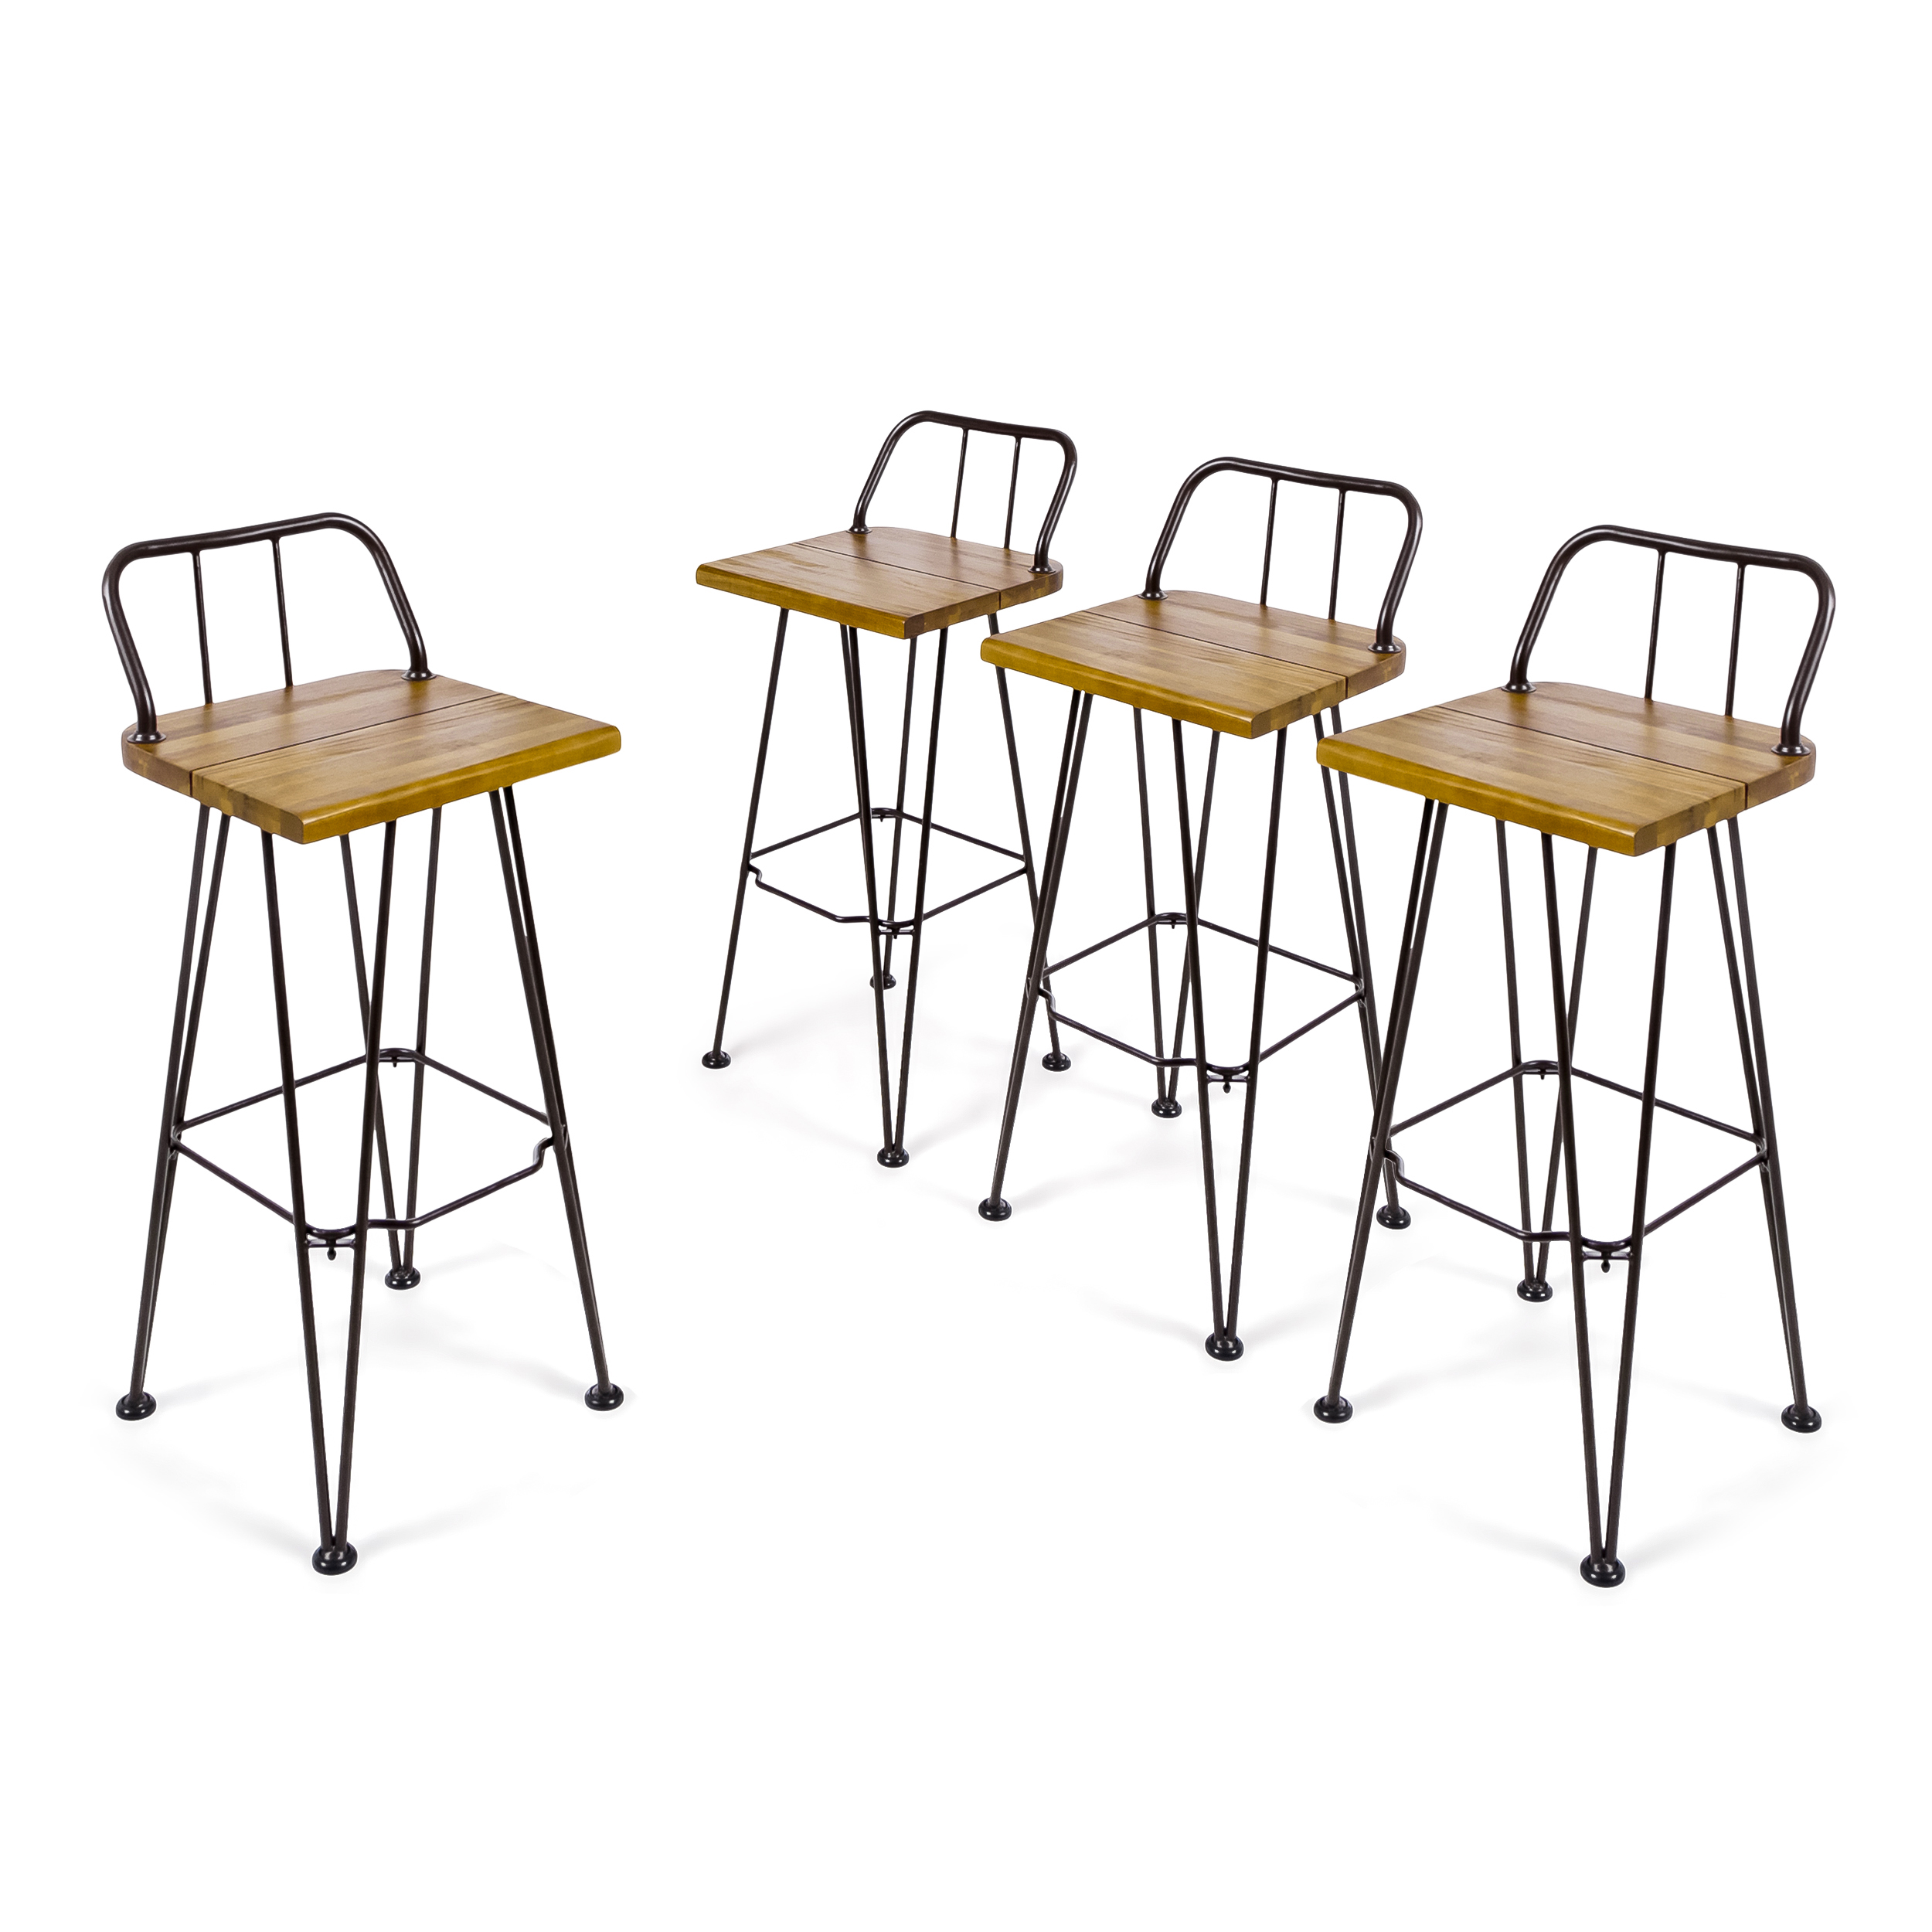 Leonardo Outdoor Industrial Acacia Wood Bar Stools with Iron Frame, Set of 4, Teak and Rustic Metal by GDF Studio